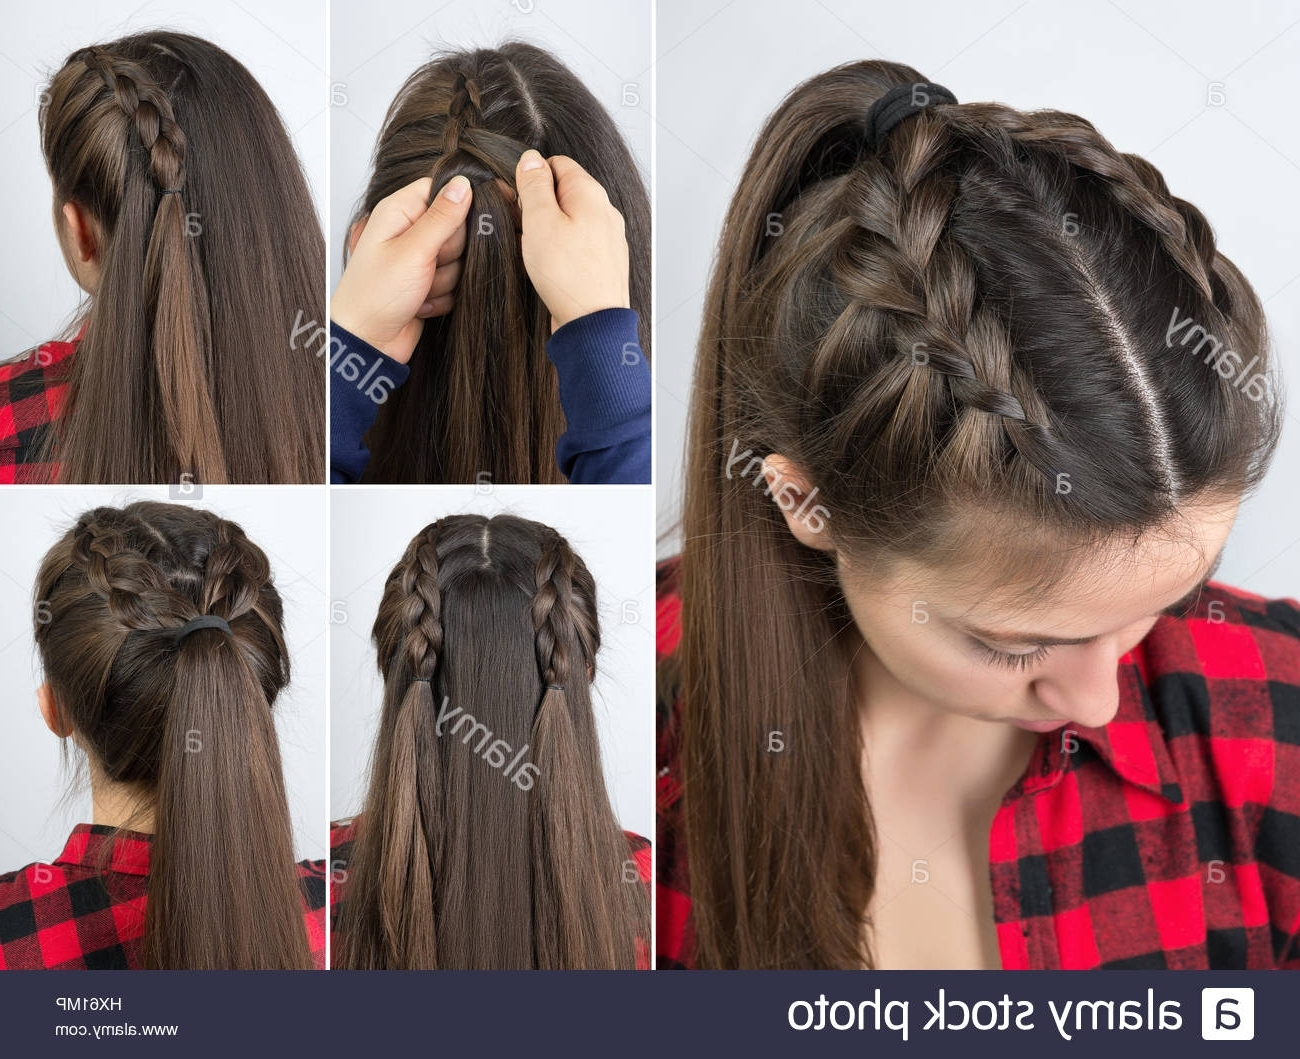 Simple Braided Hairstyle Tutorial Stepstep (View 10 of 15)